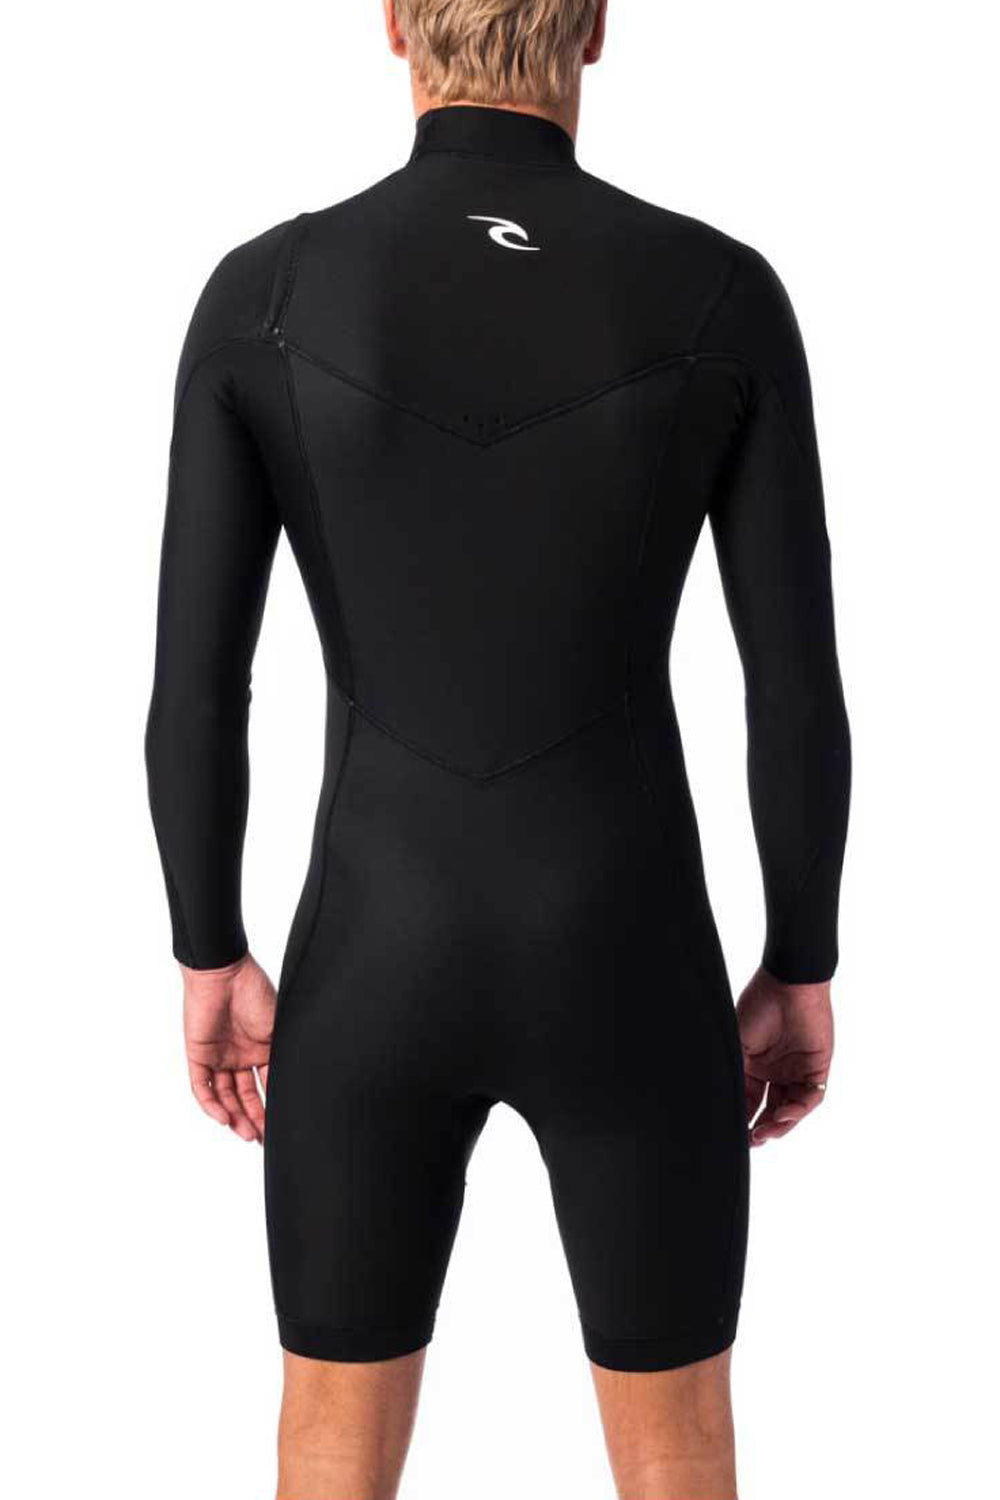 Rip Curl Dawn Patrol 2mm Long Sleeve Chest Zip Spring Suit